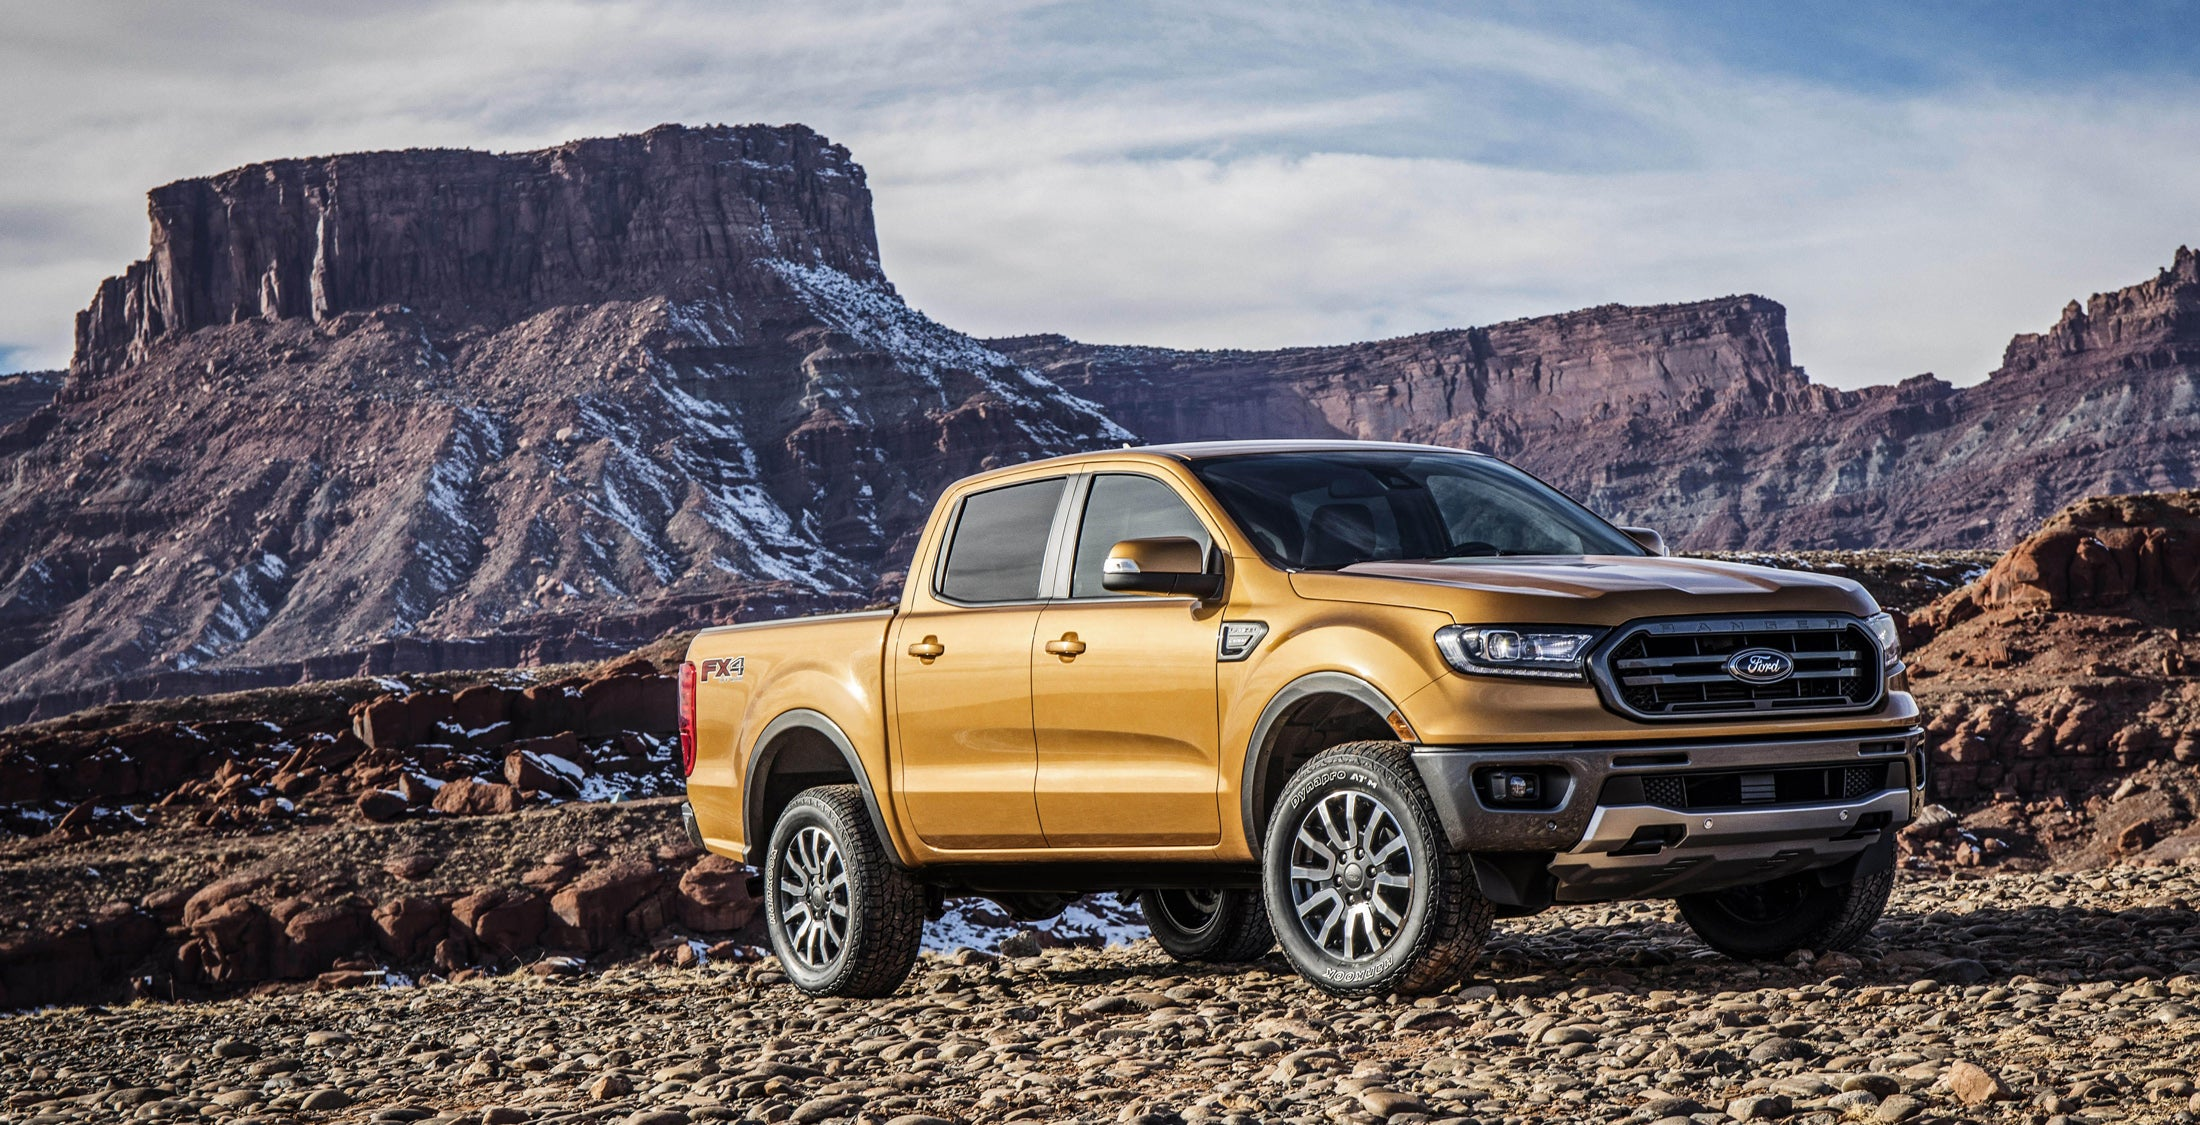 Ford Ranger 2019: The beloved, iconic pick-up truck is finally coming home | Trusted Reviews